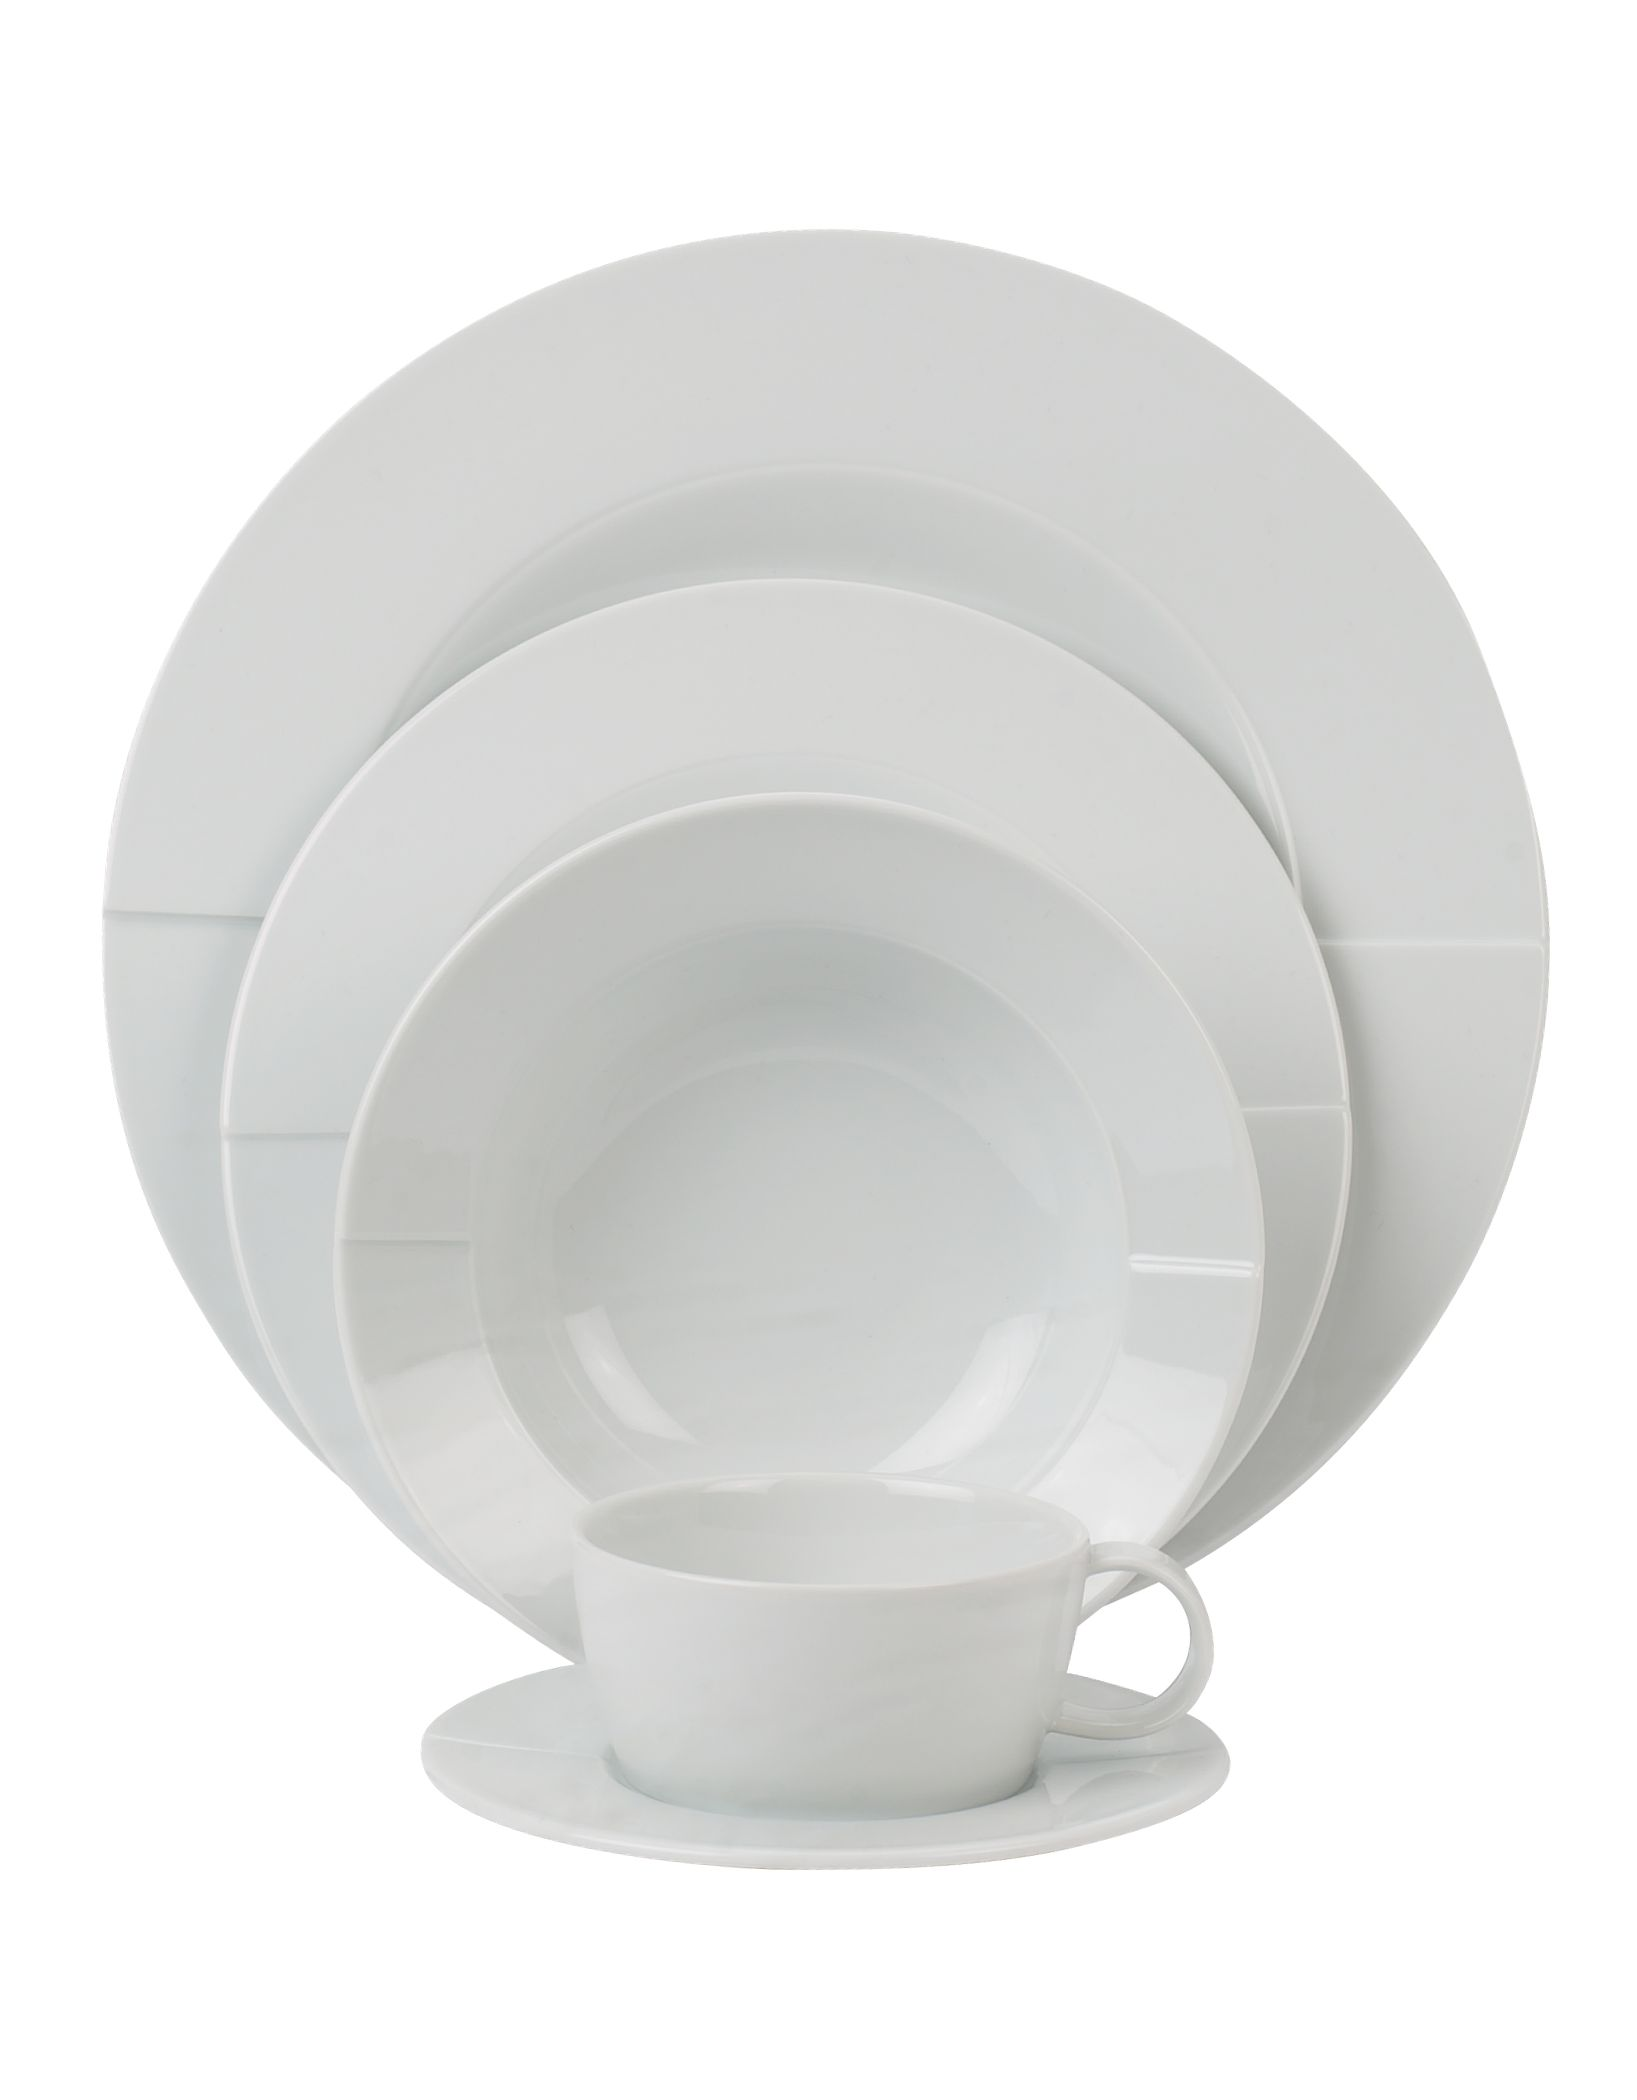 James Martin white dinnerware range